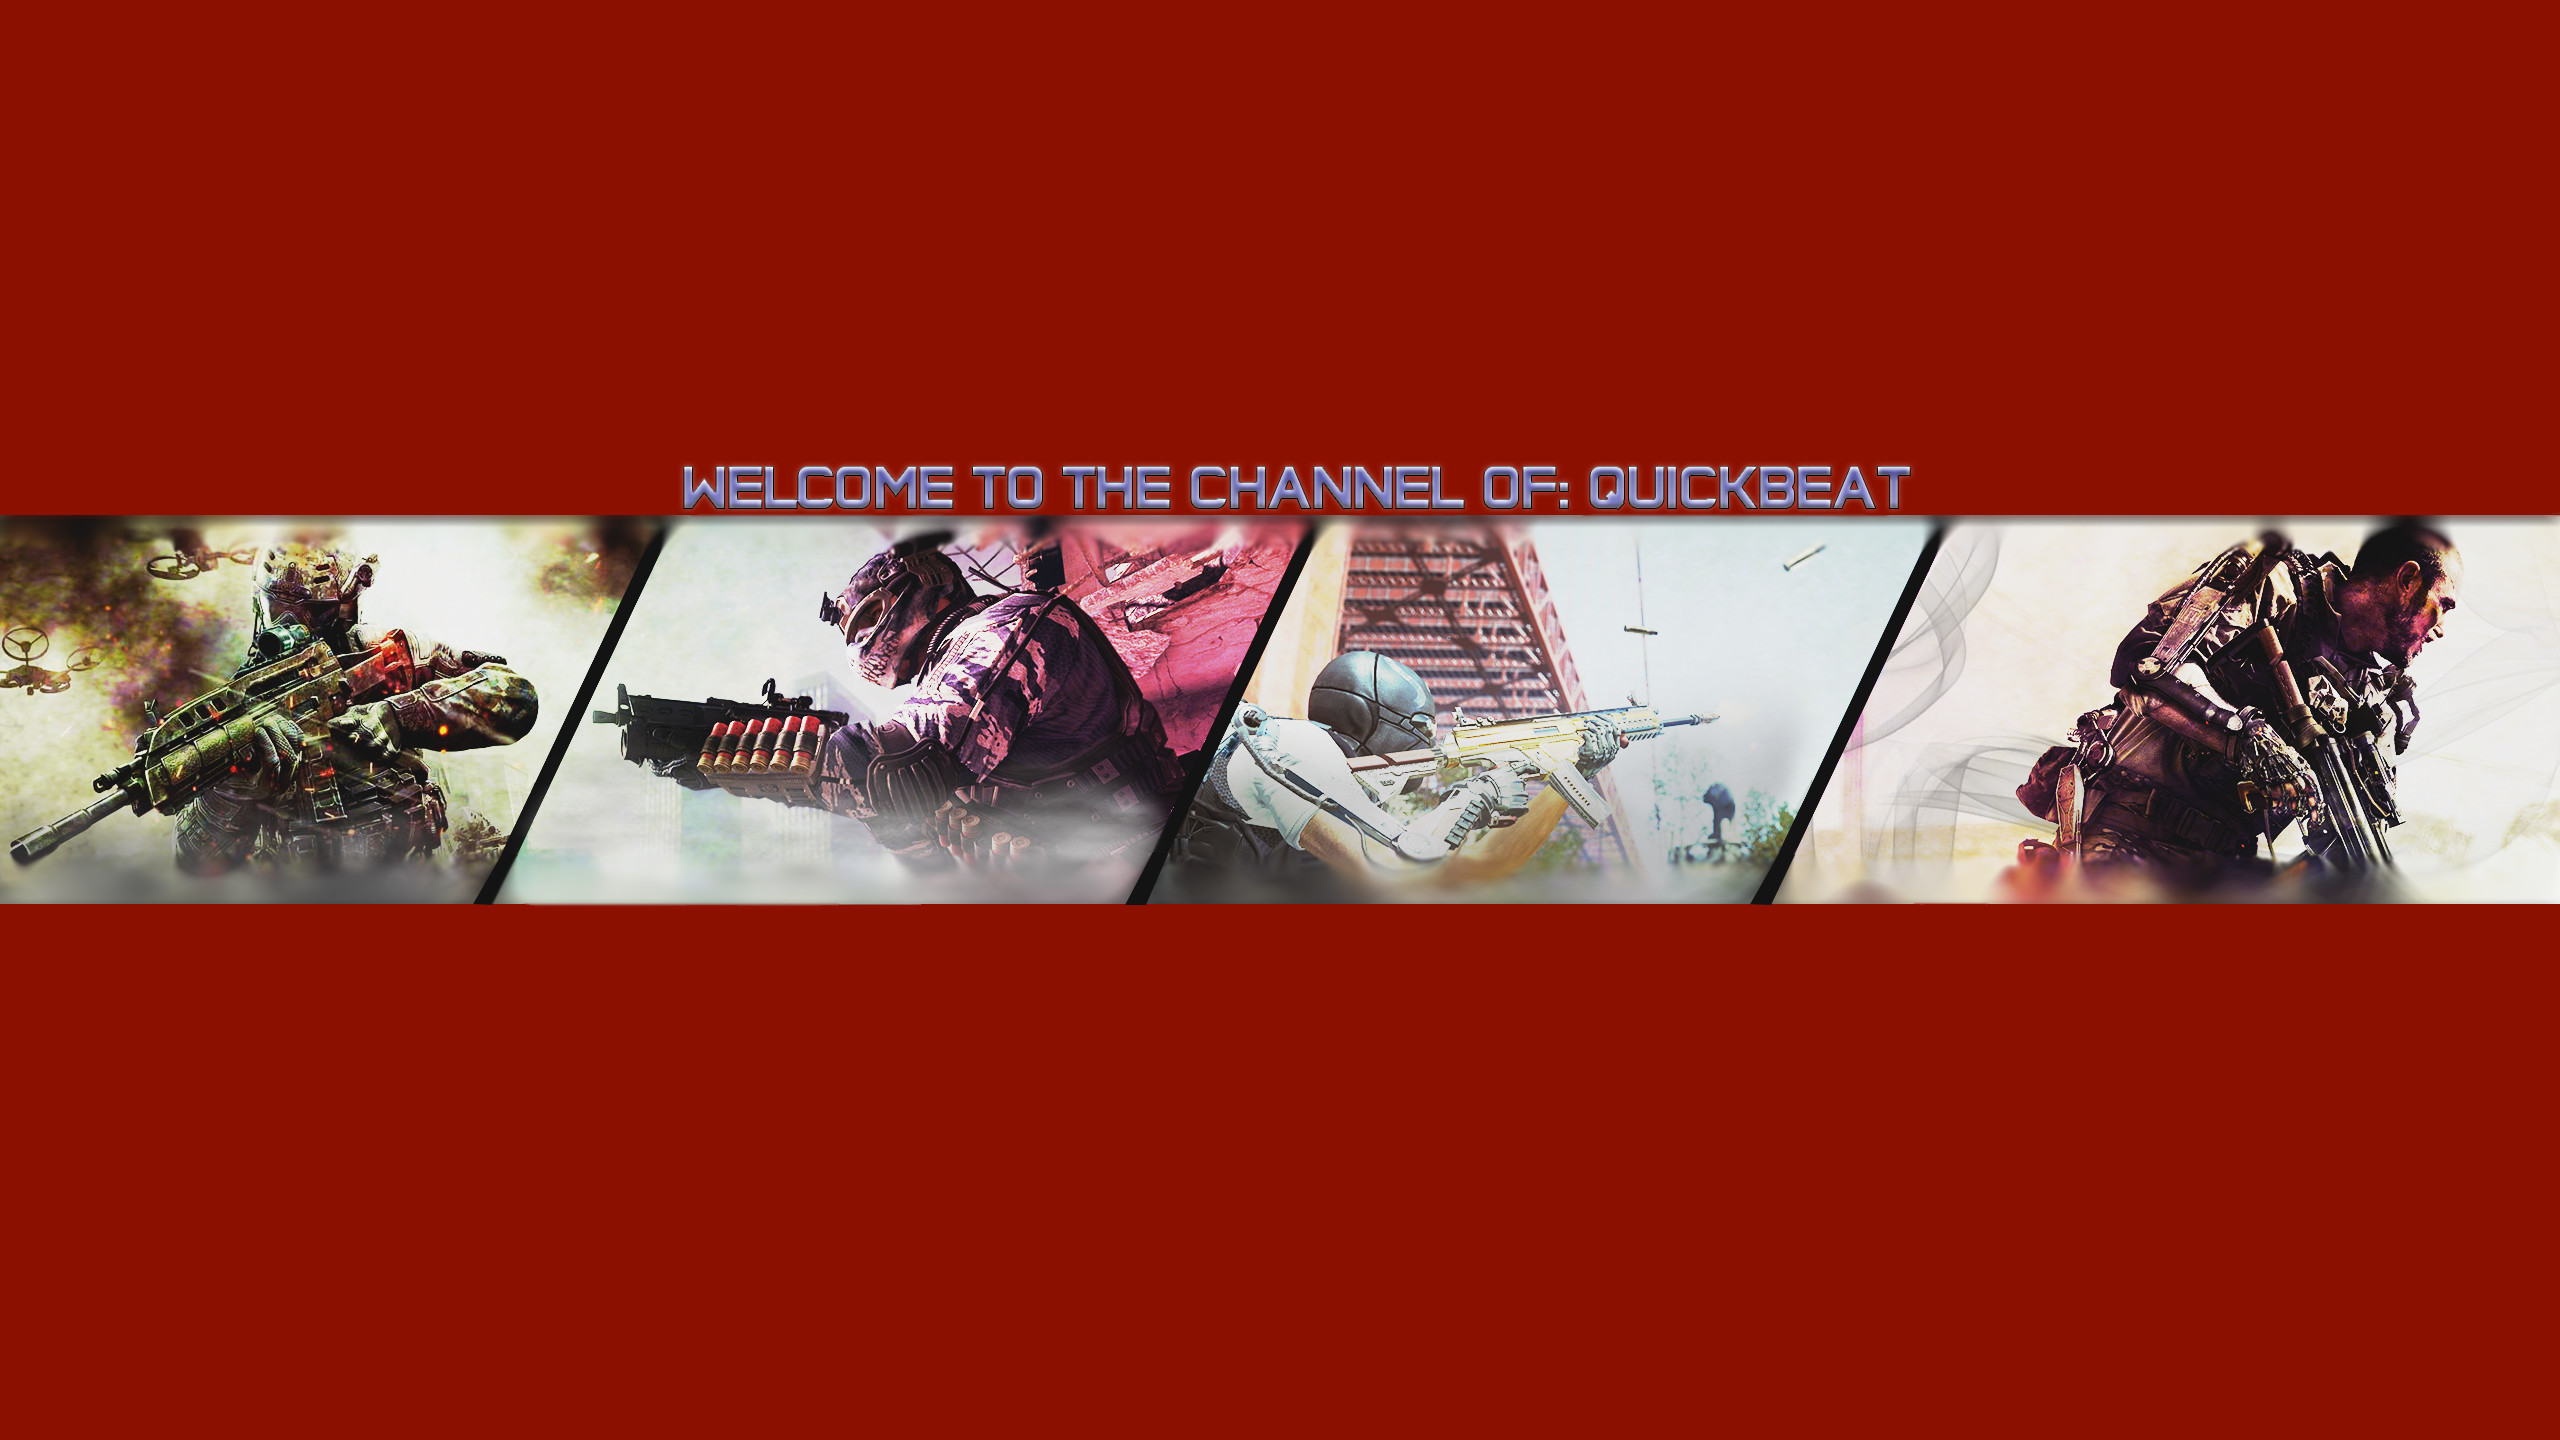 … Call of duty youtube banner by QuickBeat